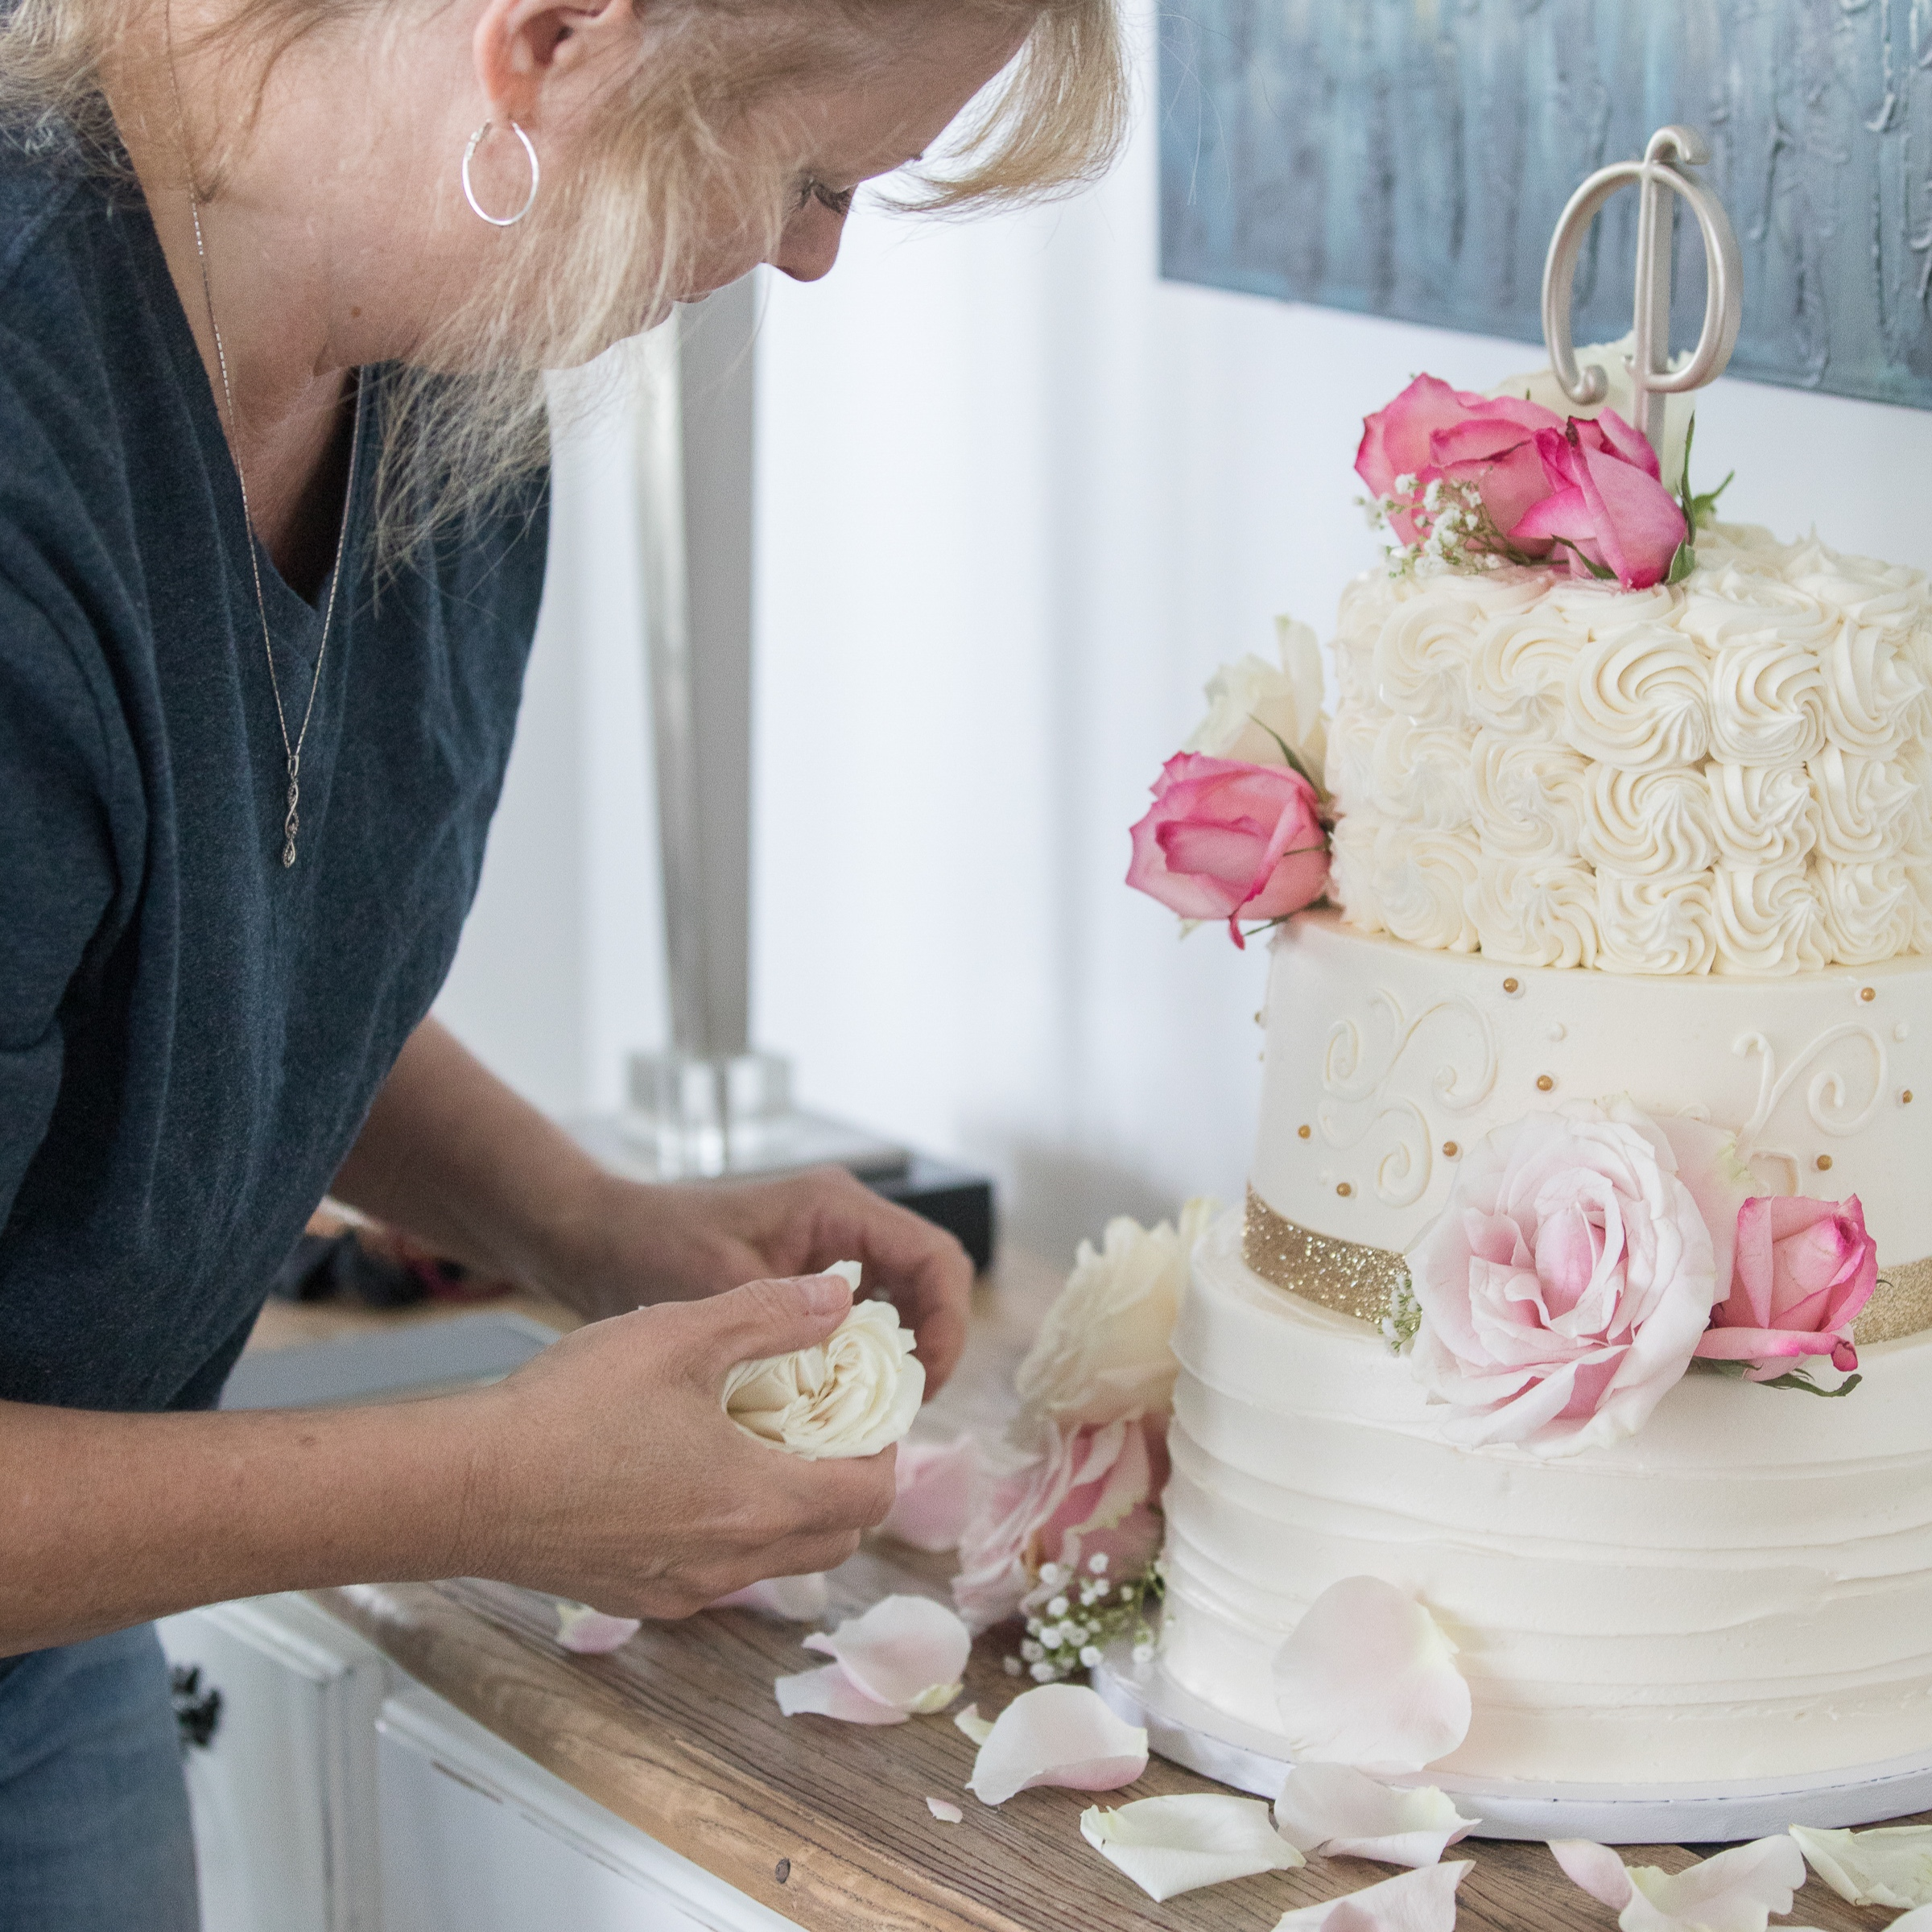 Kim's cakes are stunning and as well as delicious